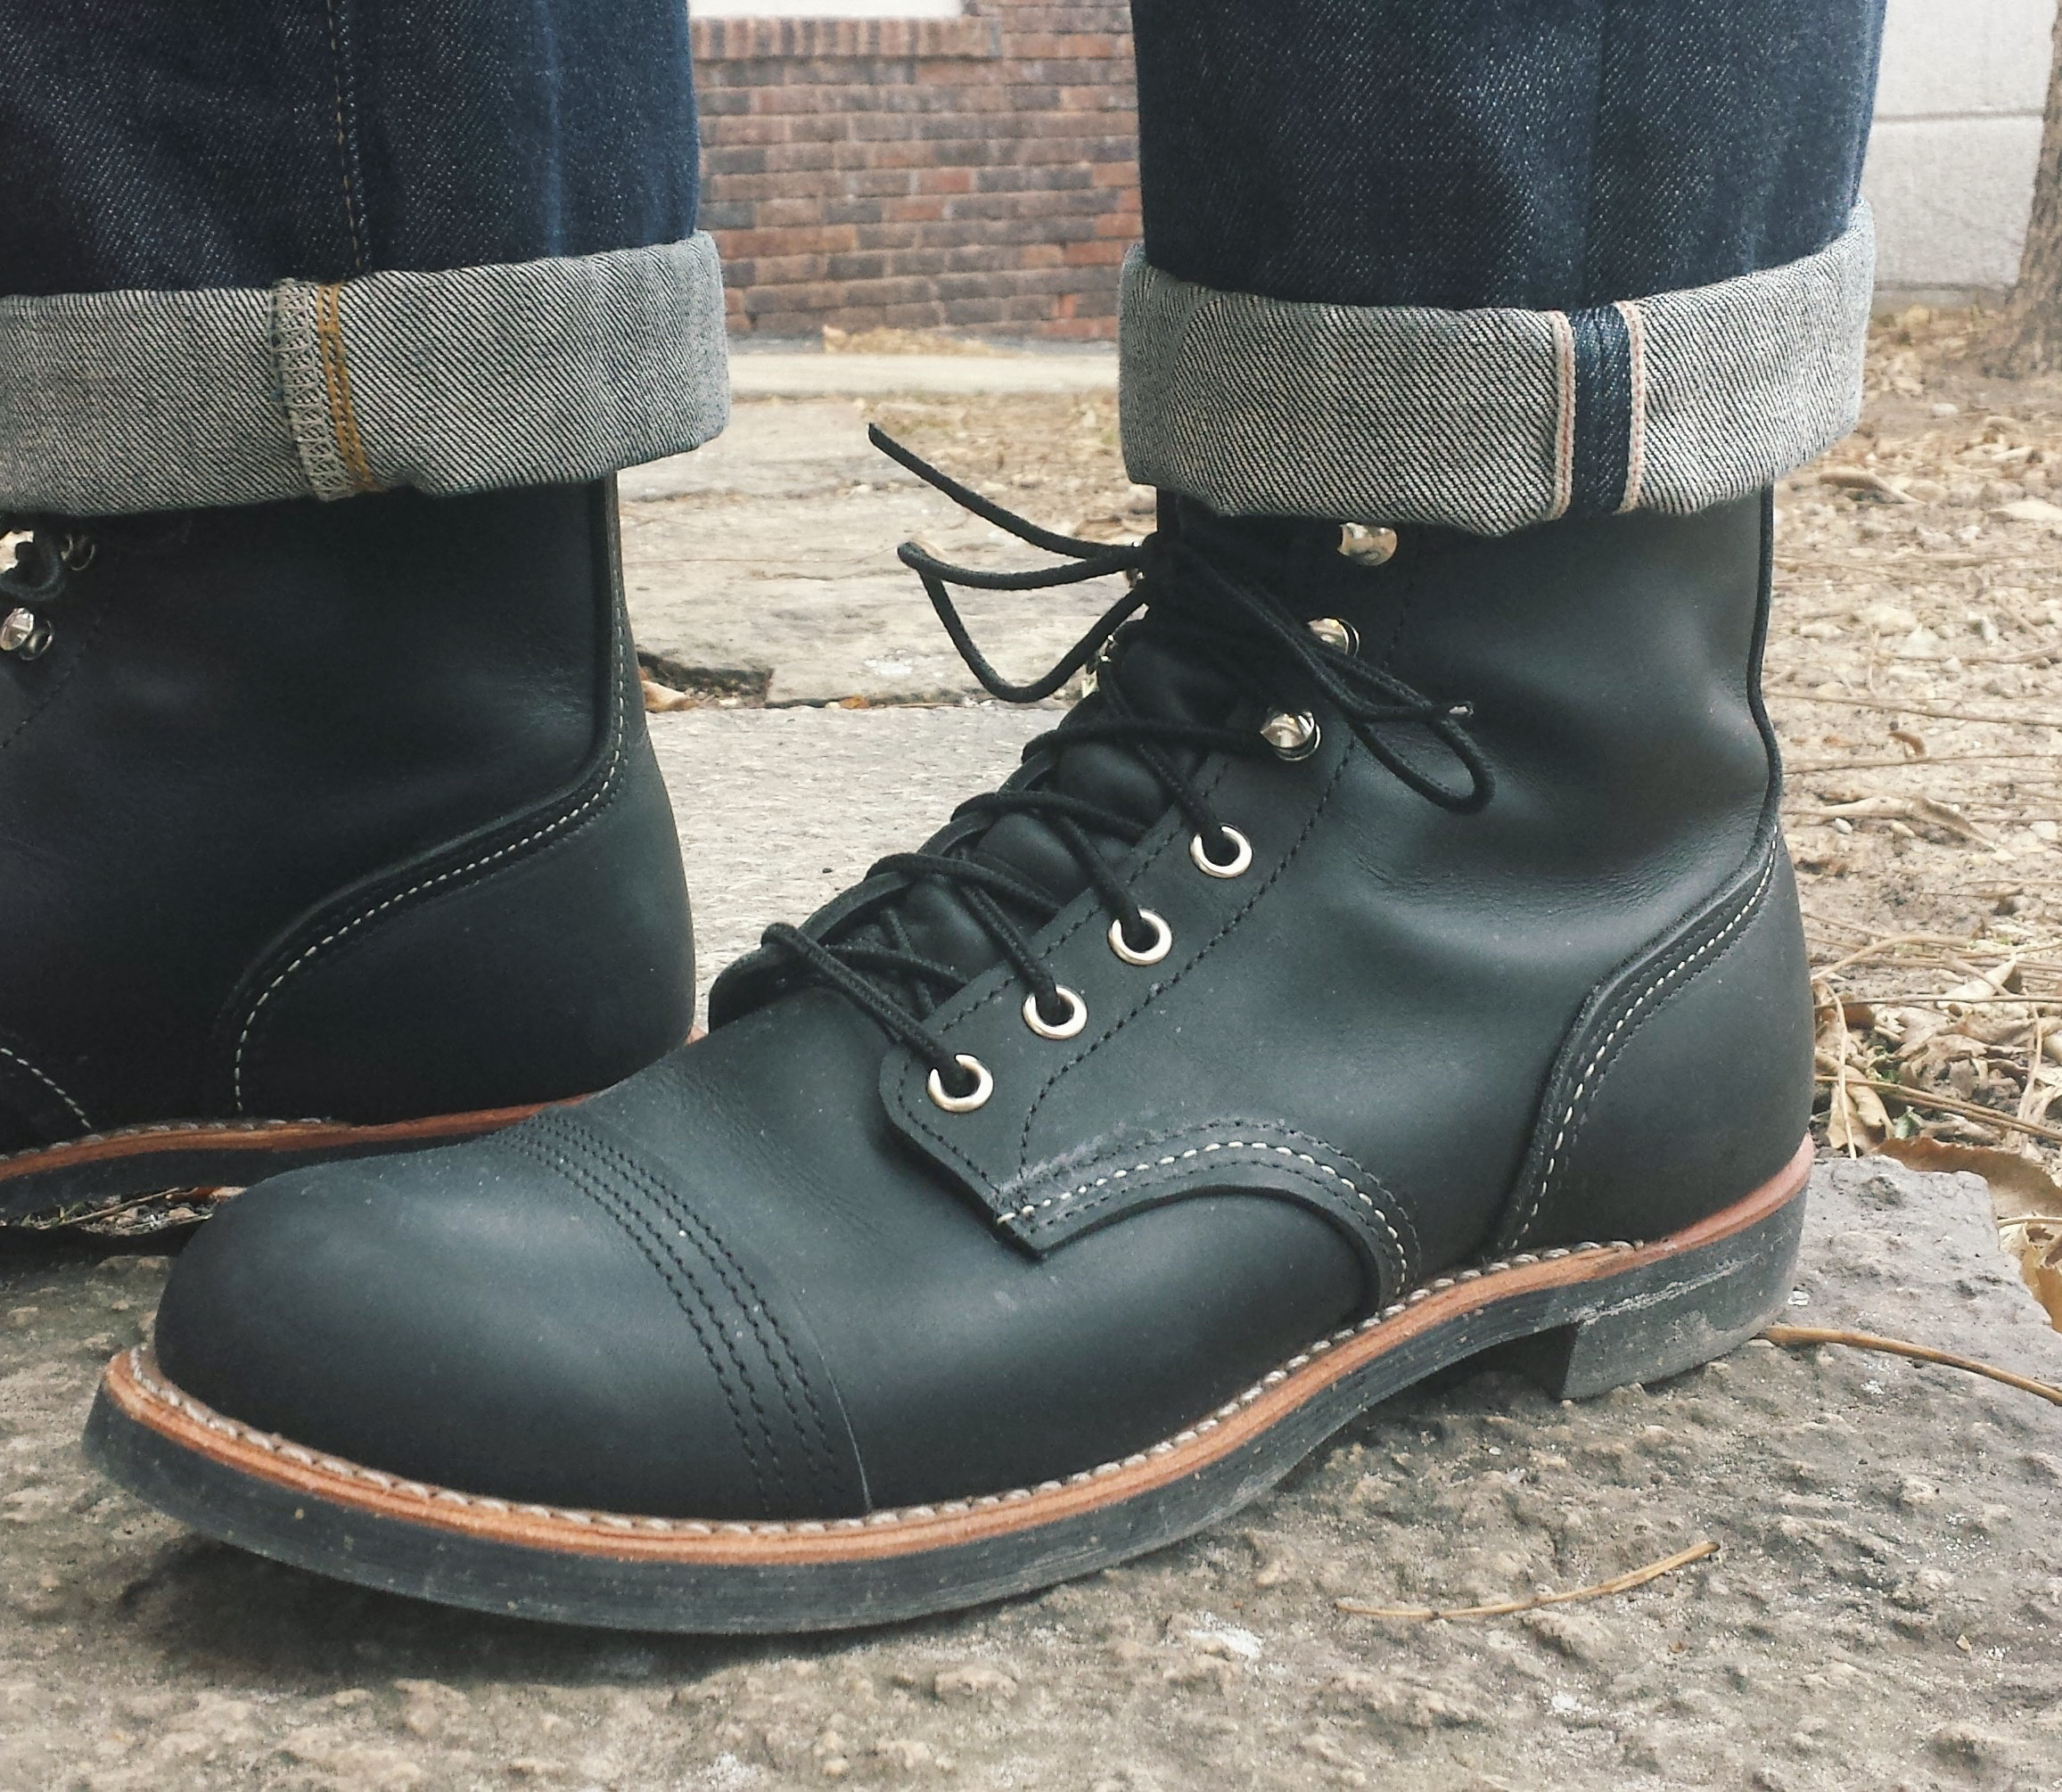 Boots - Boot Hto - Part 820